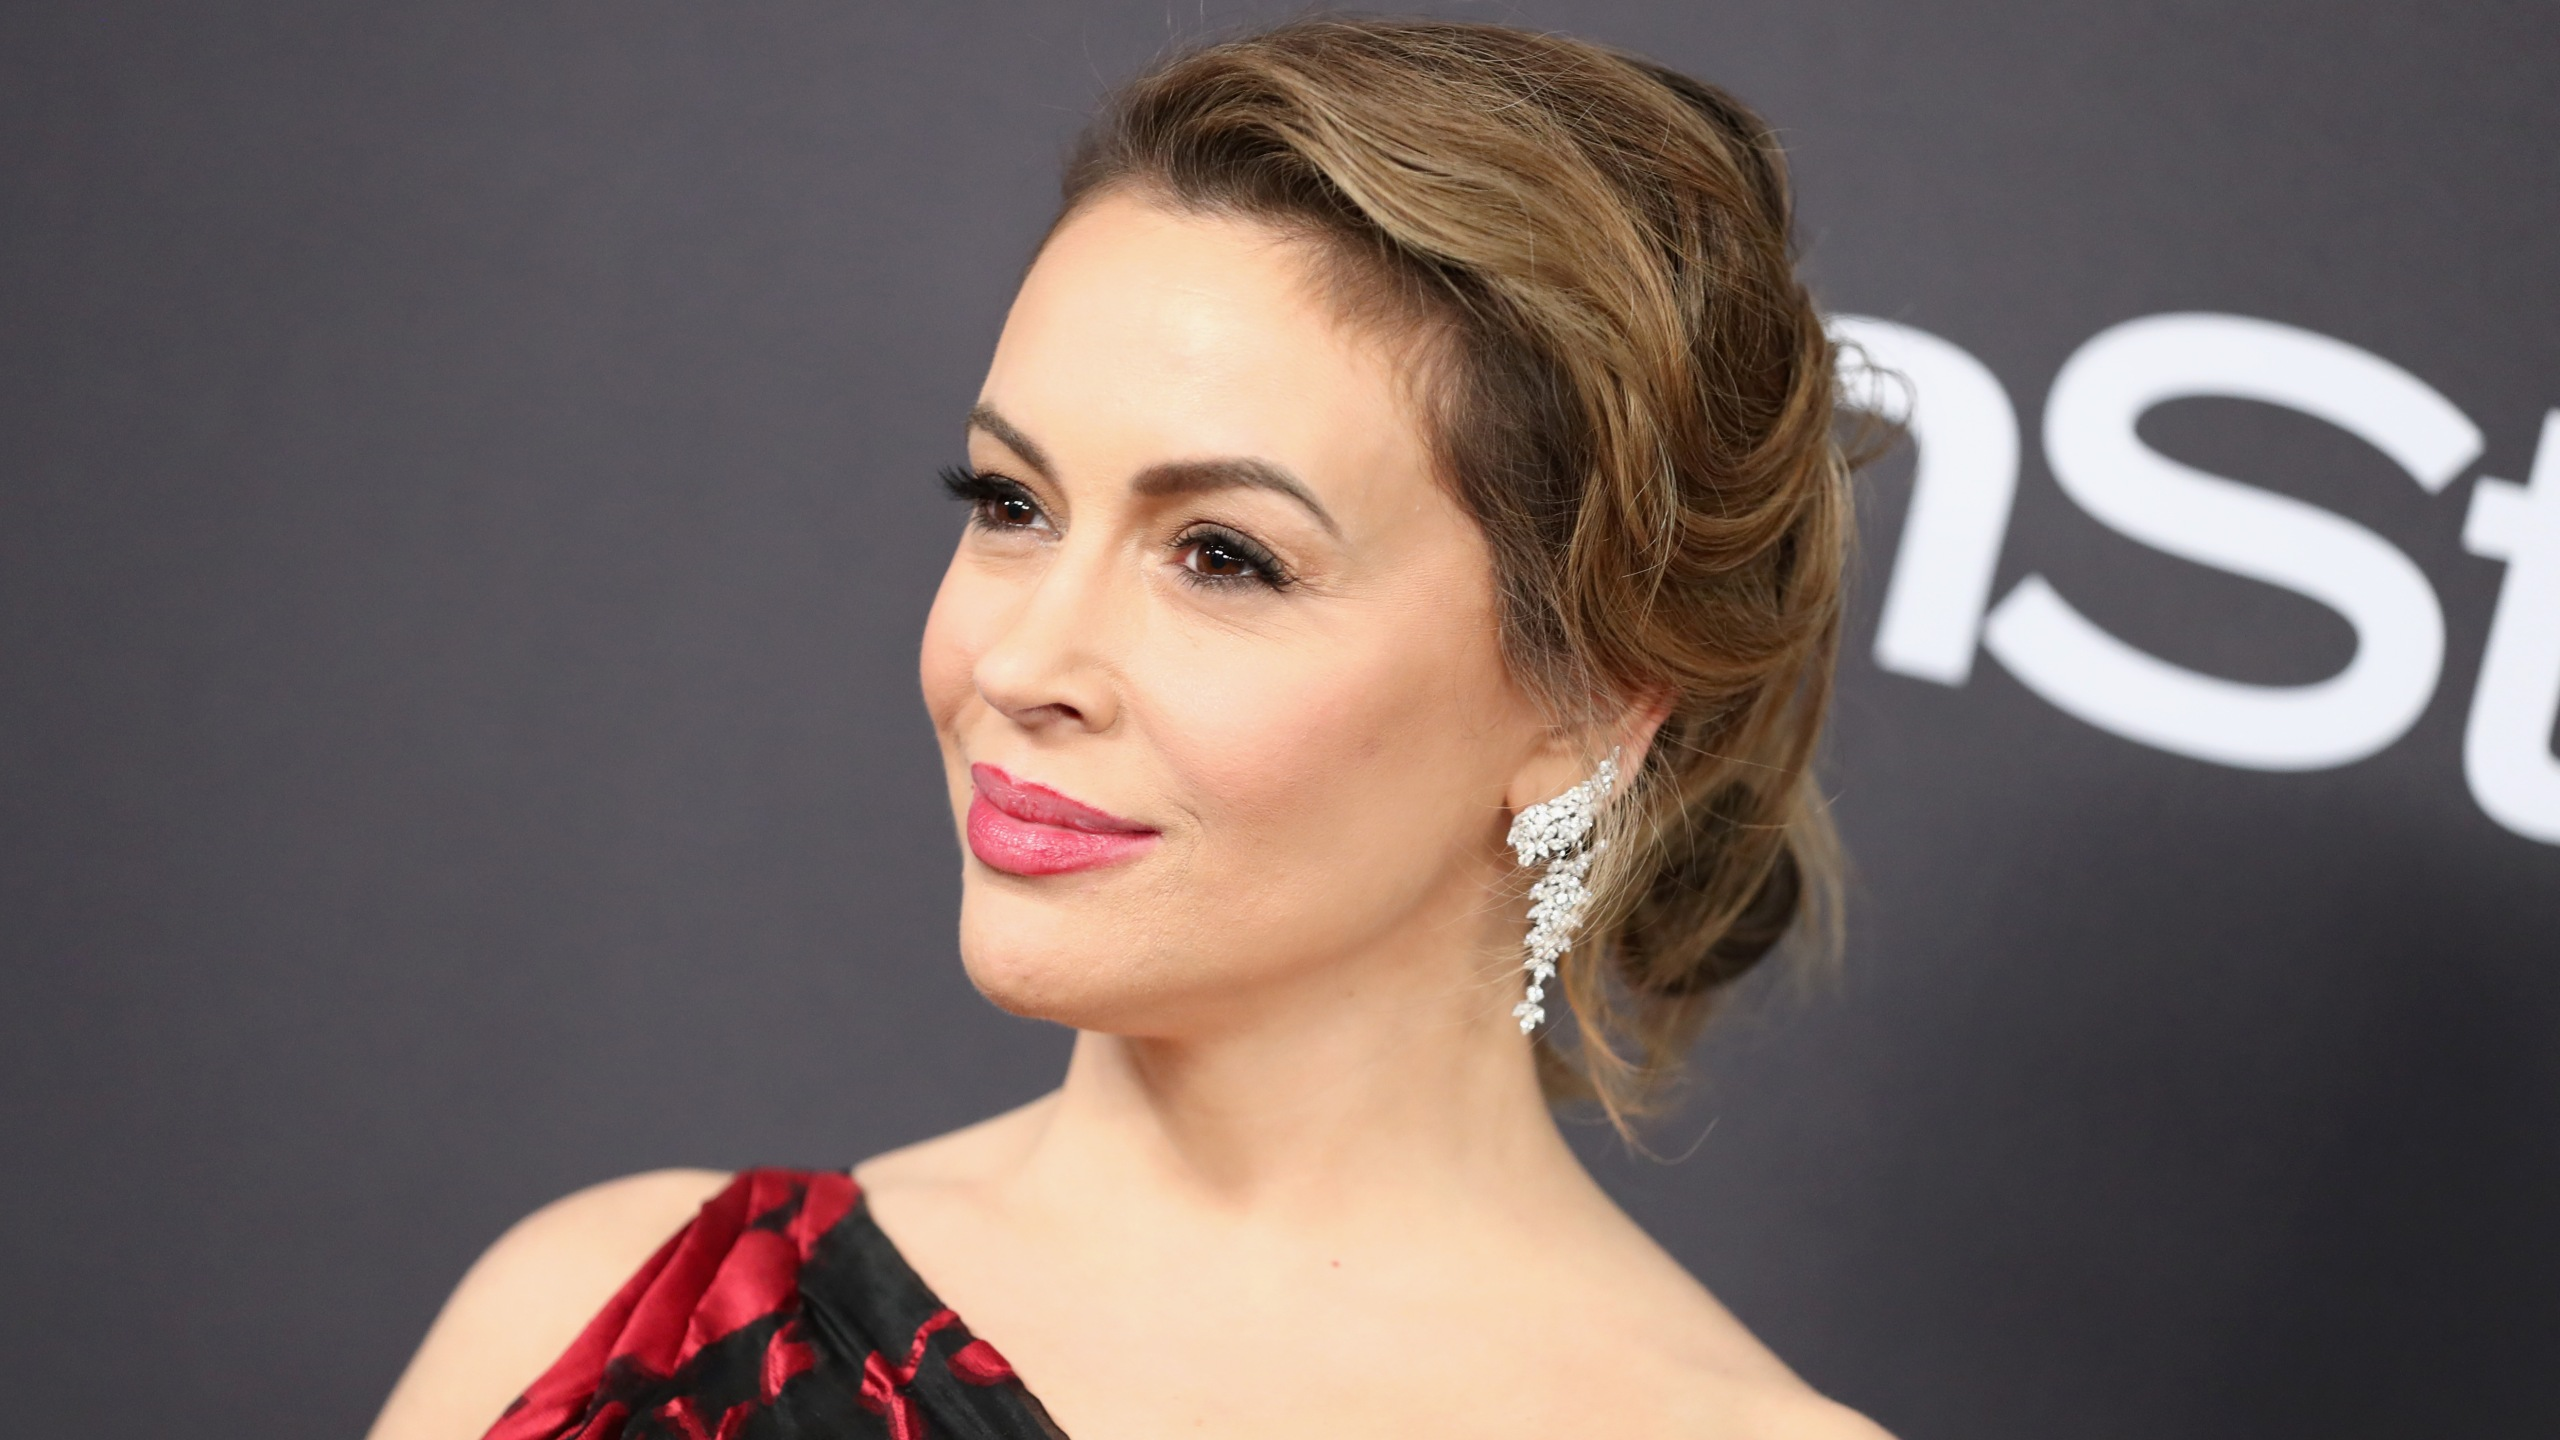 Alyssa Milano attends the InStyle And Warner Bros. Golden Globes After Party 2019 at The Beverly Hilton Hotel on January 6, 2019 in Beverly Hills. (Credit: Rich Fury/Getty Images)